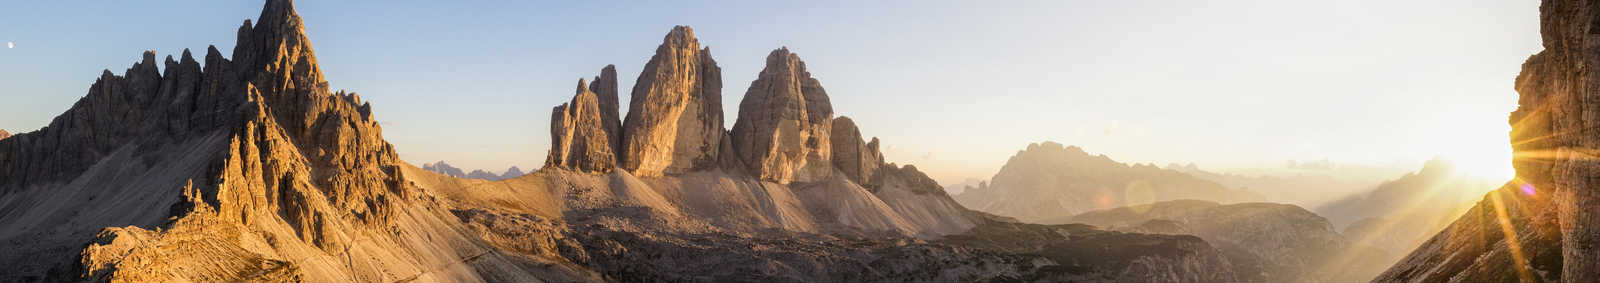 Sunset over the Tre Cime